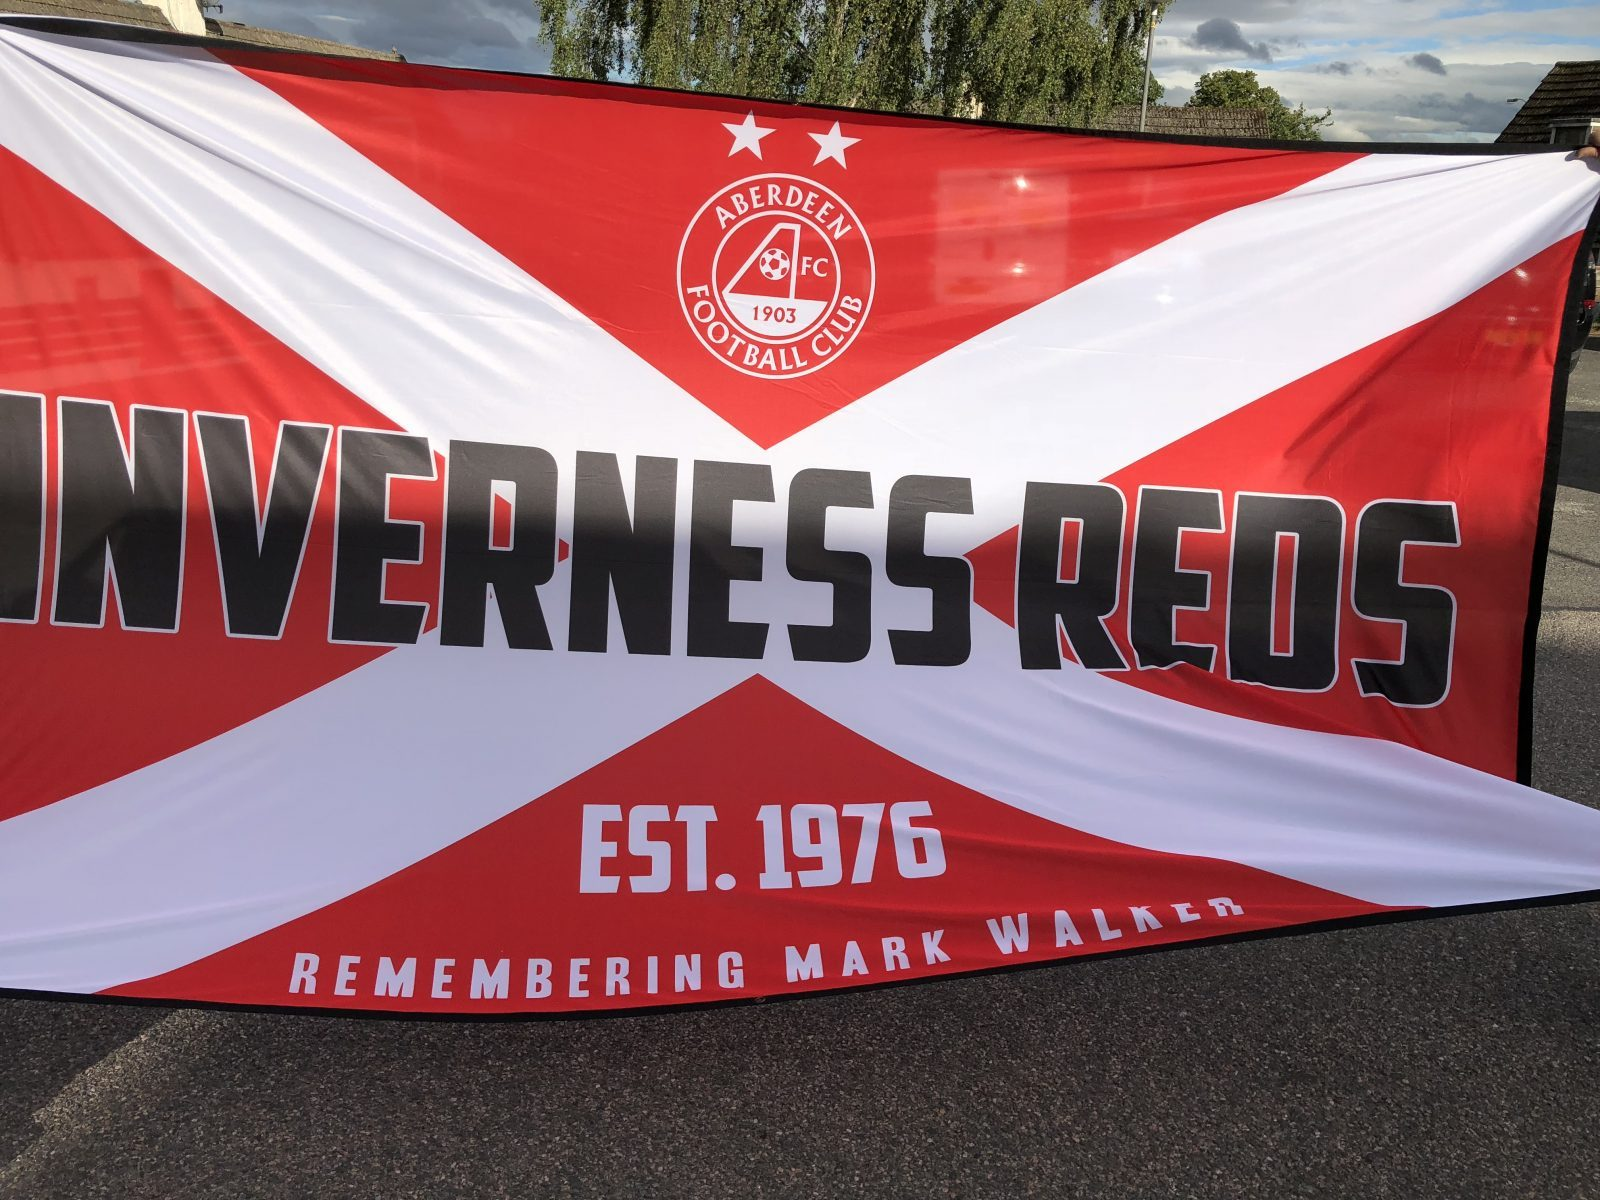 Inverness Reds